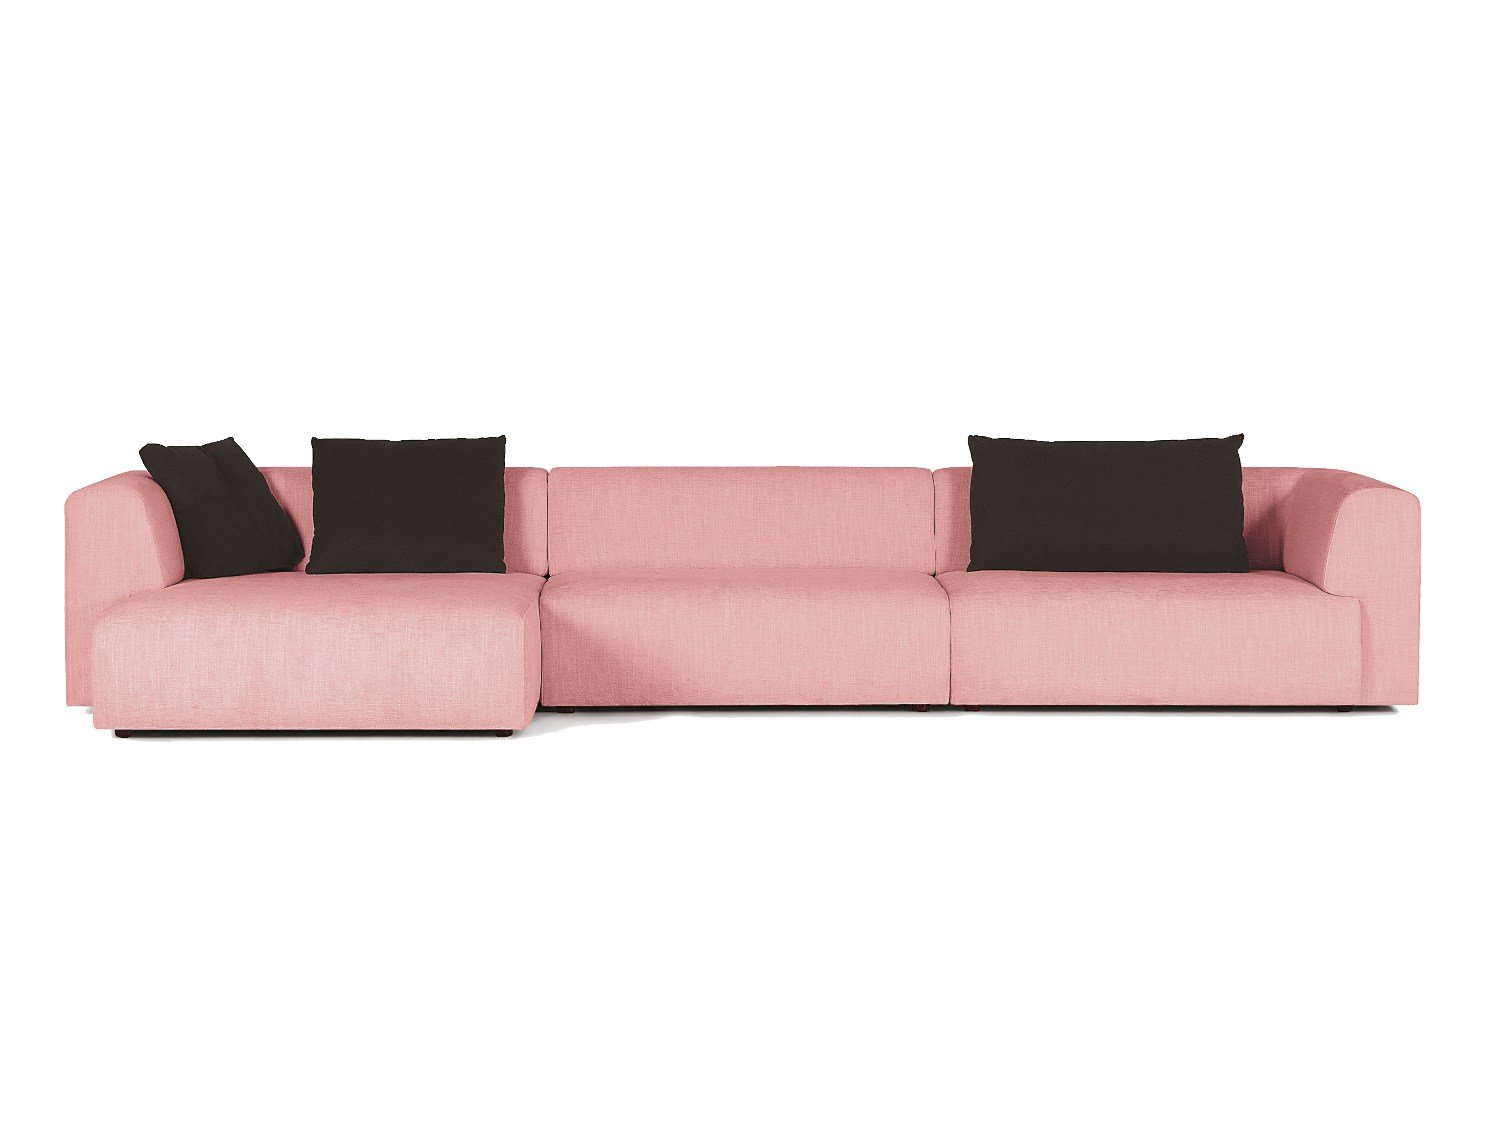 Duo sofa with chaise longue by sancal design rafa garc a for Chaise longue sofa